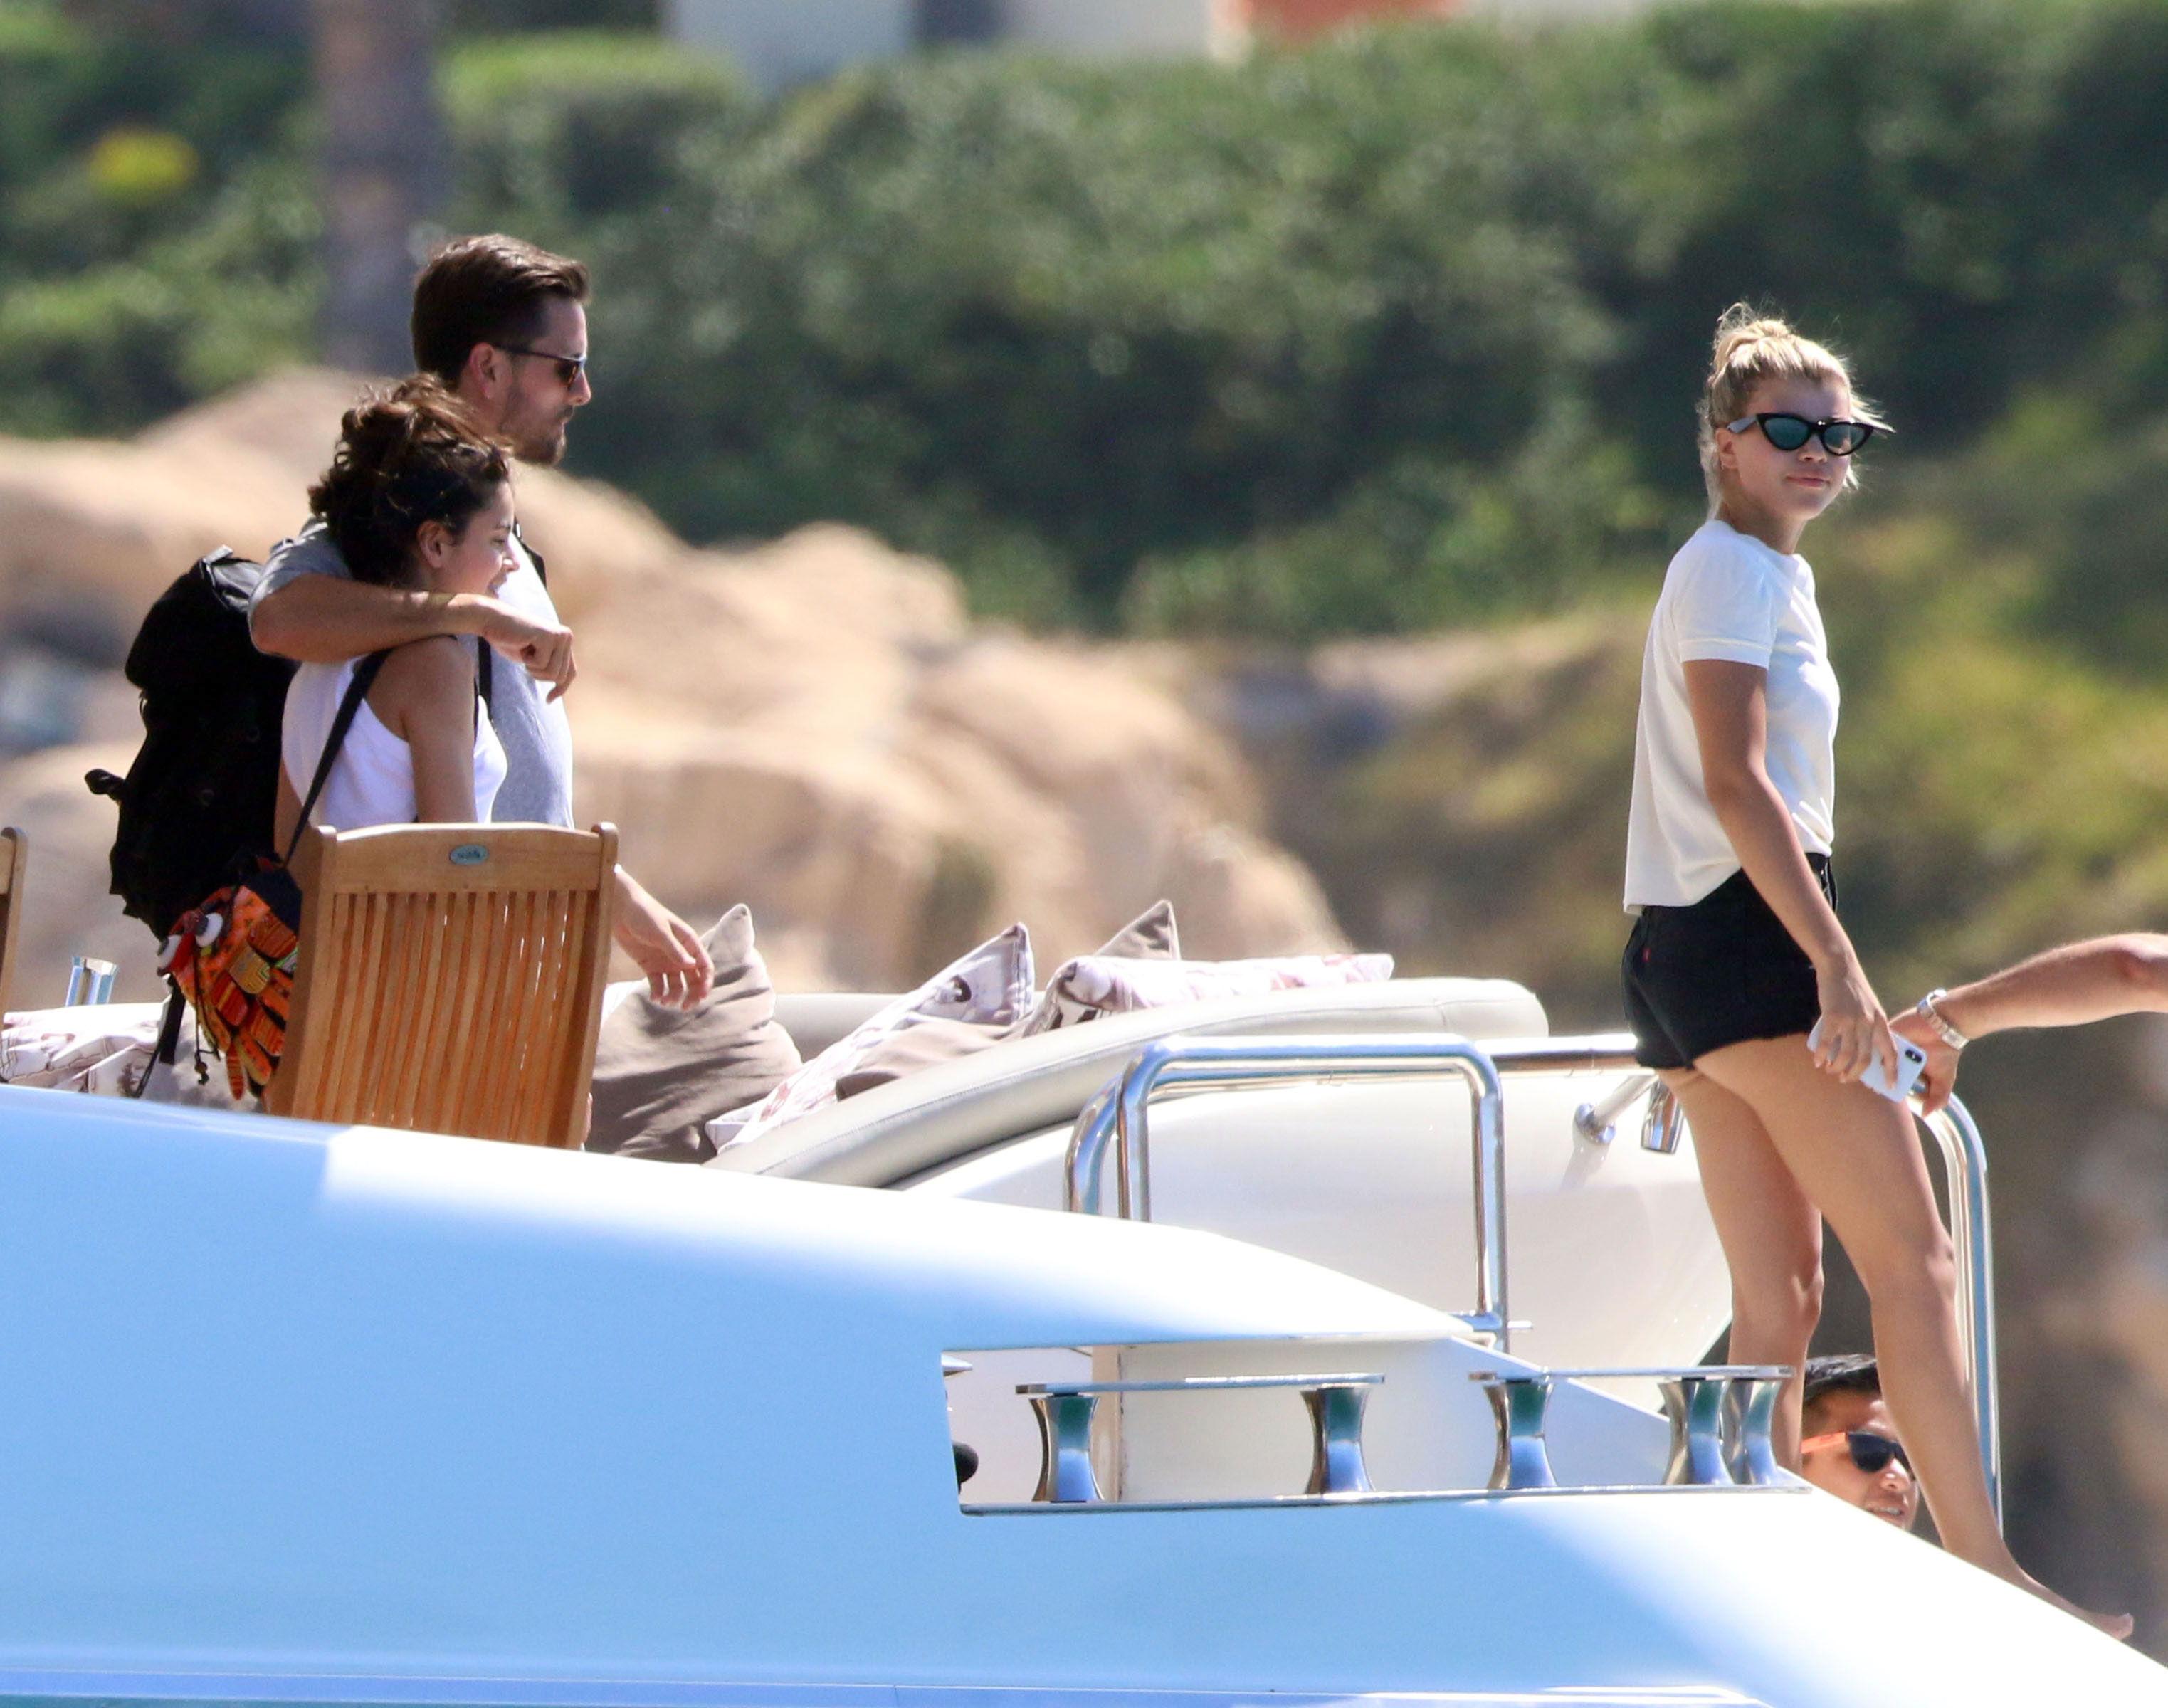 Scott Disick Sofia Richie vacation in Mexico - The reality star wrapped his arm around a female friend as they stepped off the boat.